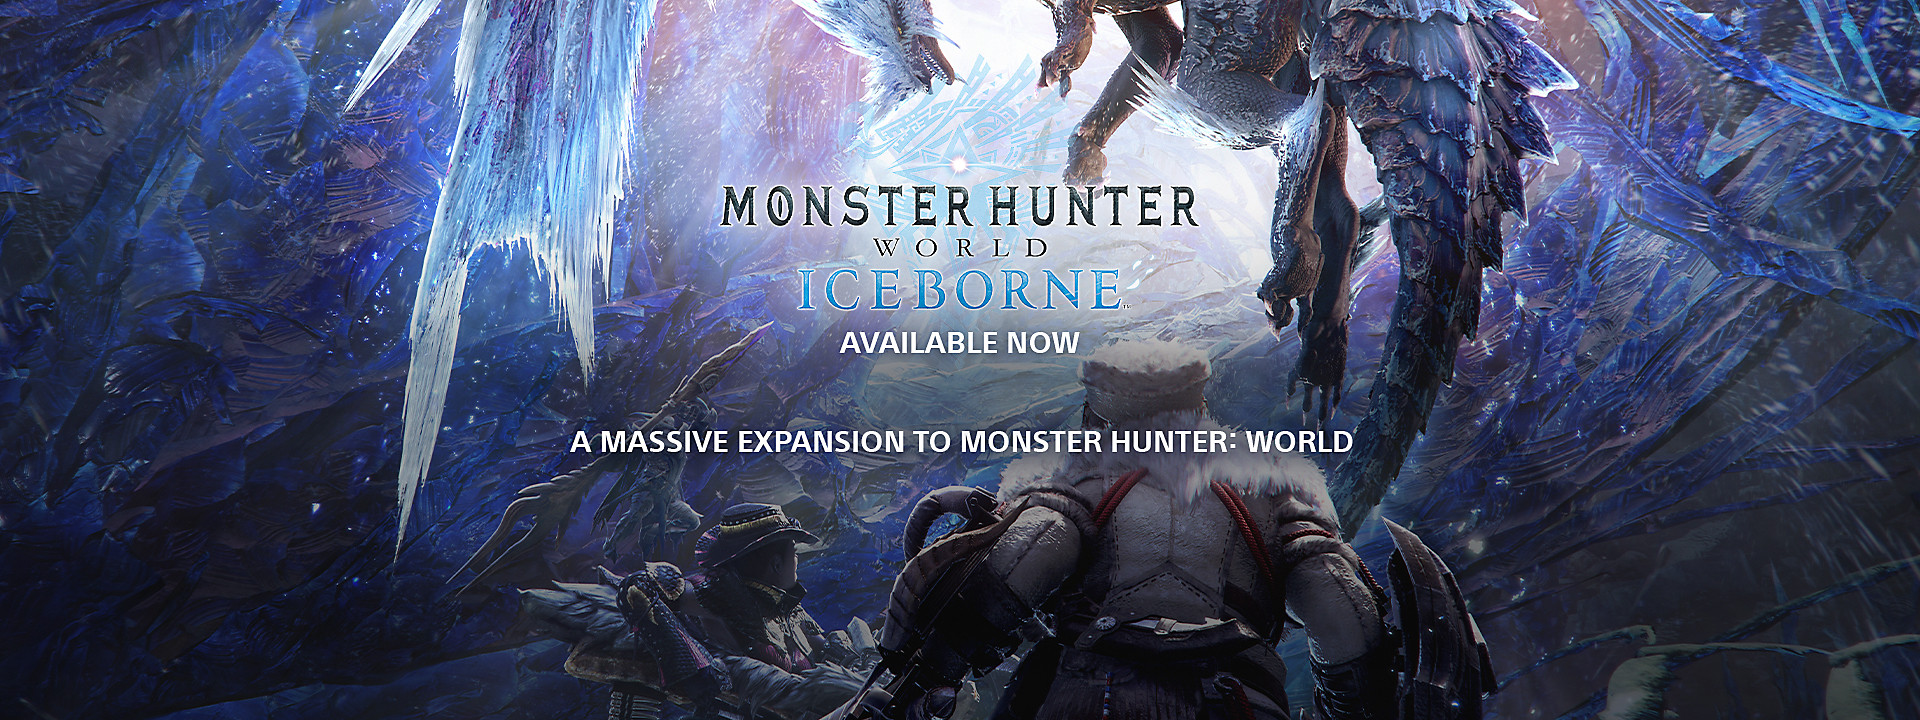 Monster Hunter World: Iceborne - Now Available